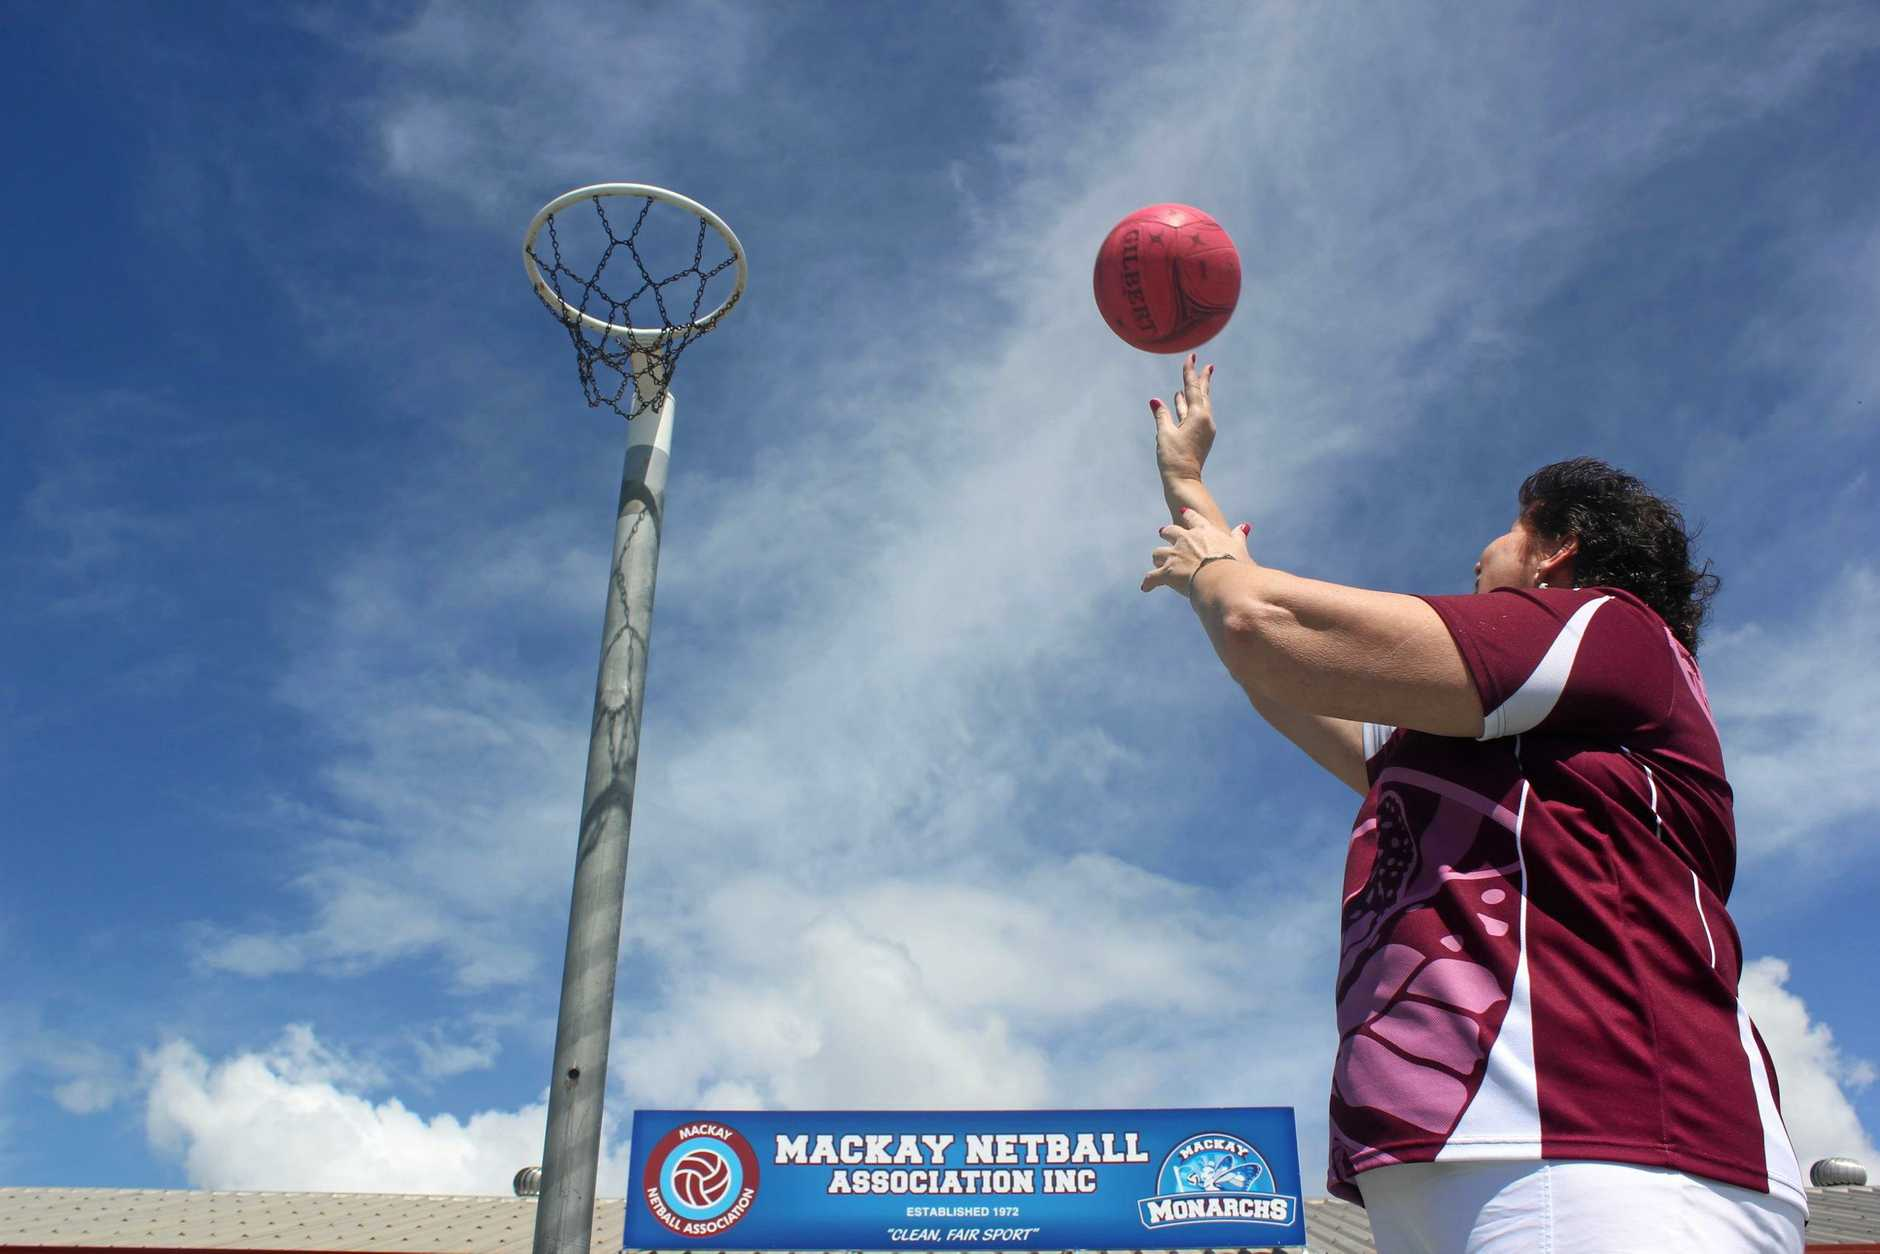 Mackay Netball Association President Lyn Law shows she's still got it.